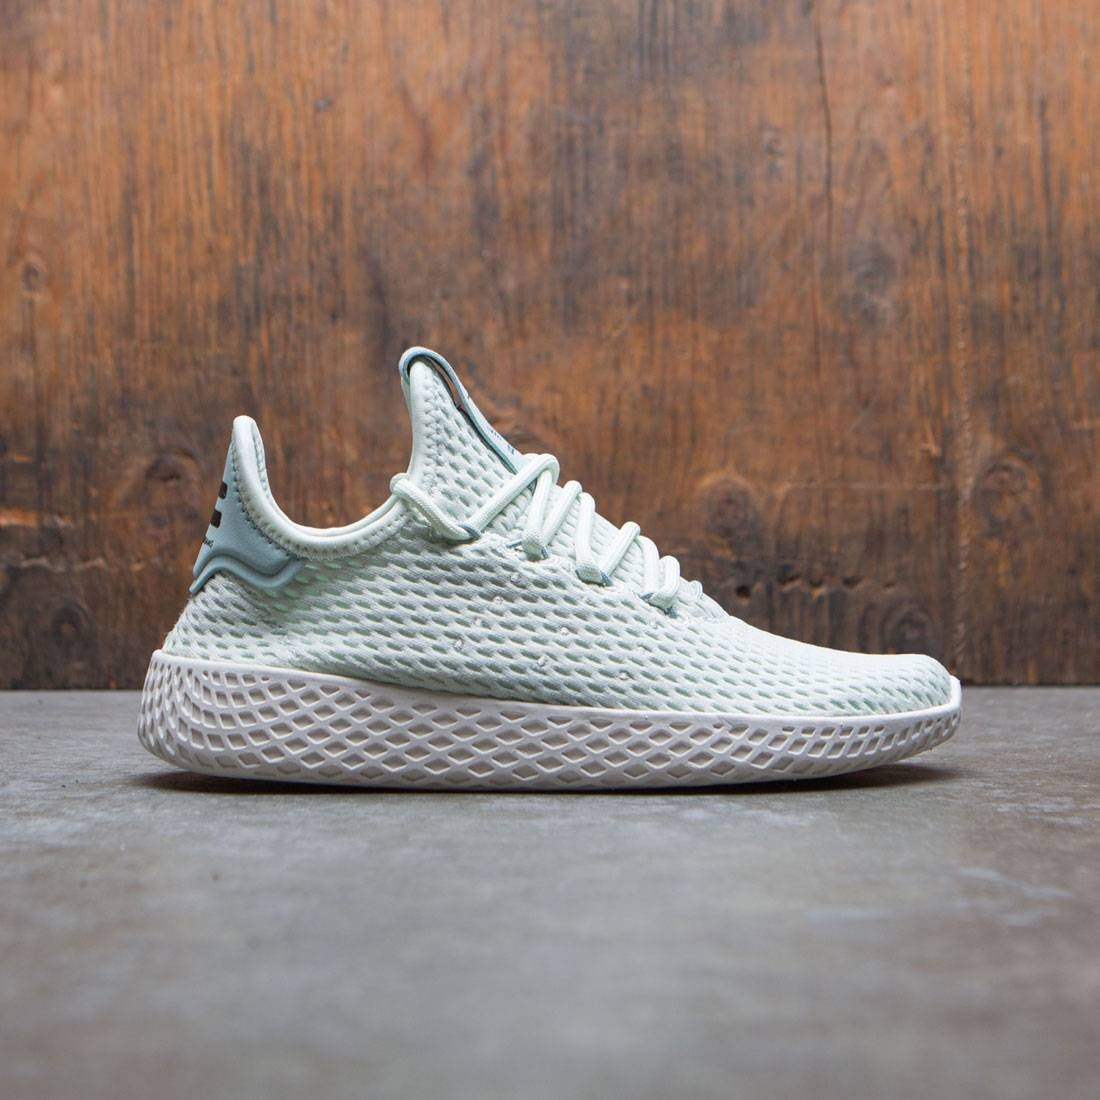 31d18d3bc87 Adidas x Pharrell Williams Big Kids Tennis HU J green linen green footwear  white